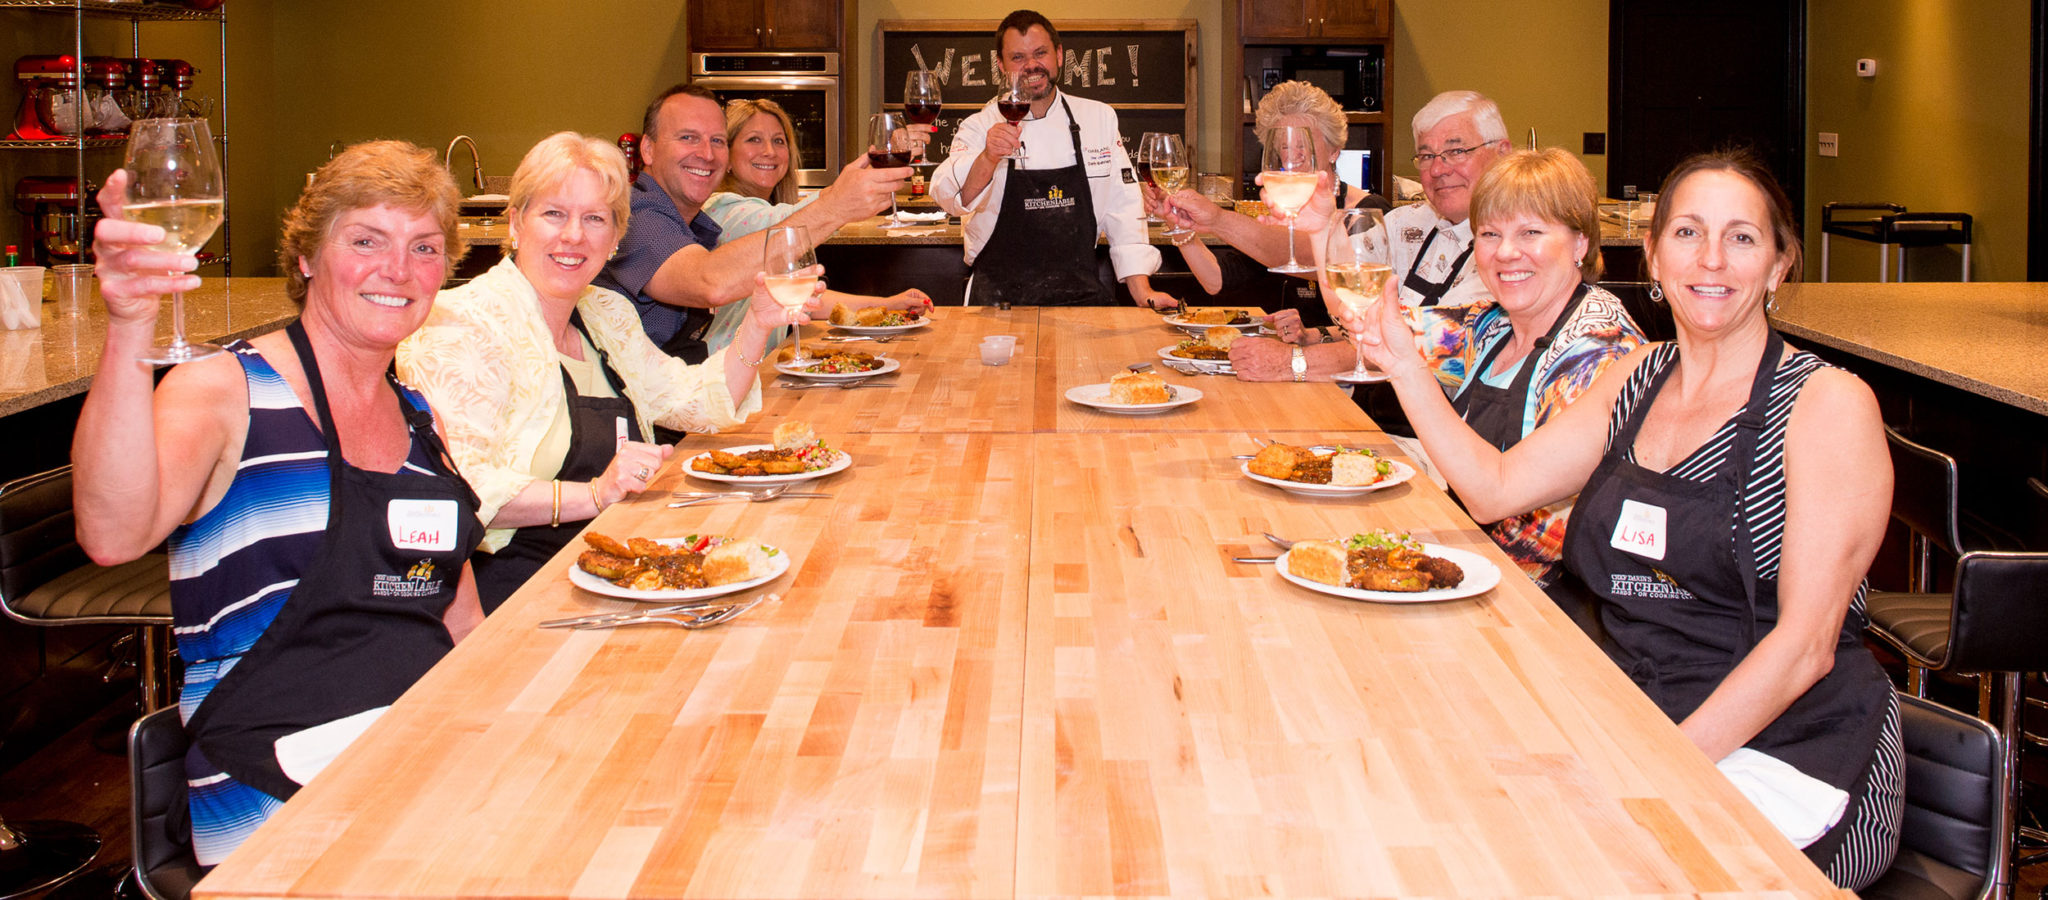 Hands-on Cooking Classes in Savannah, GA